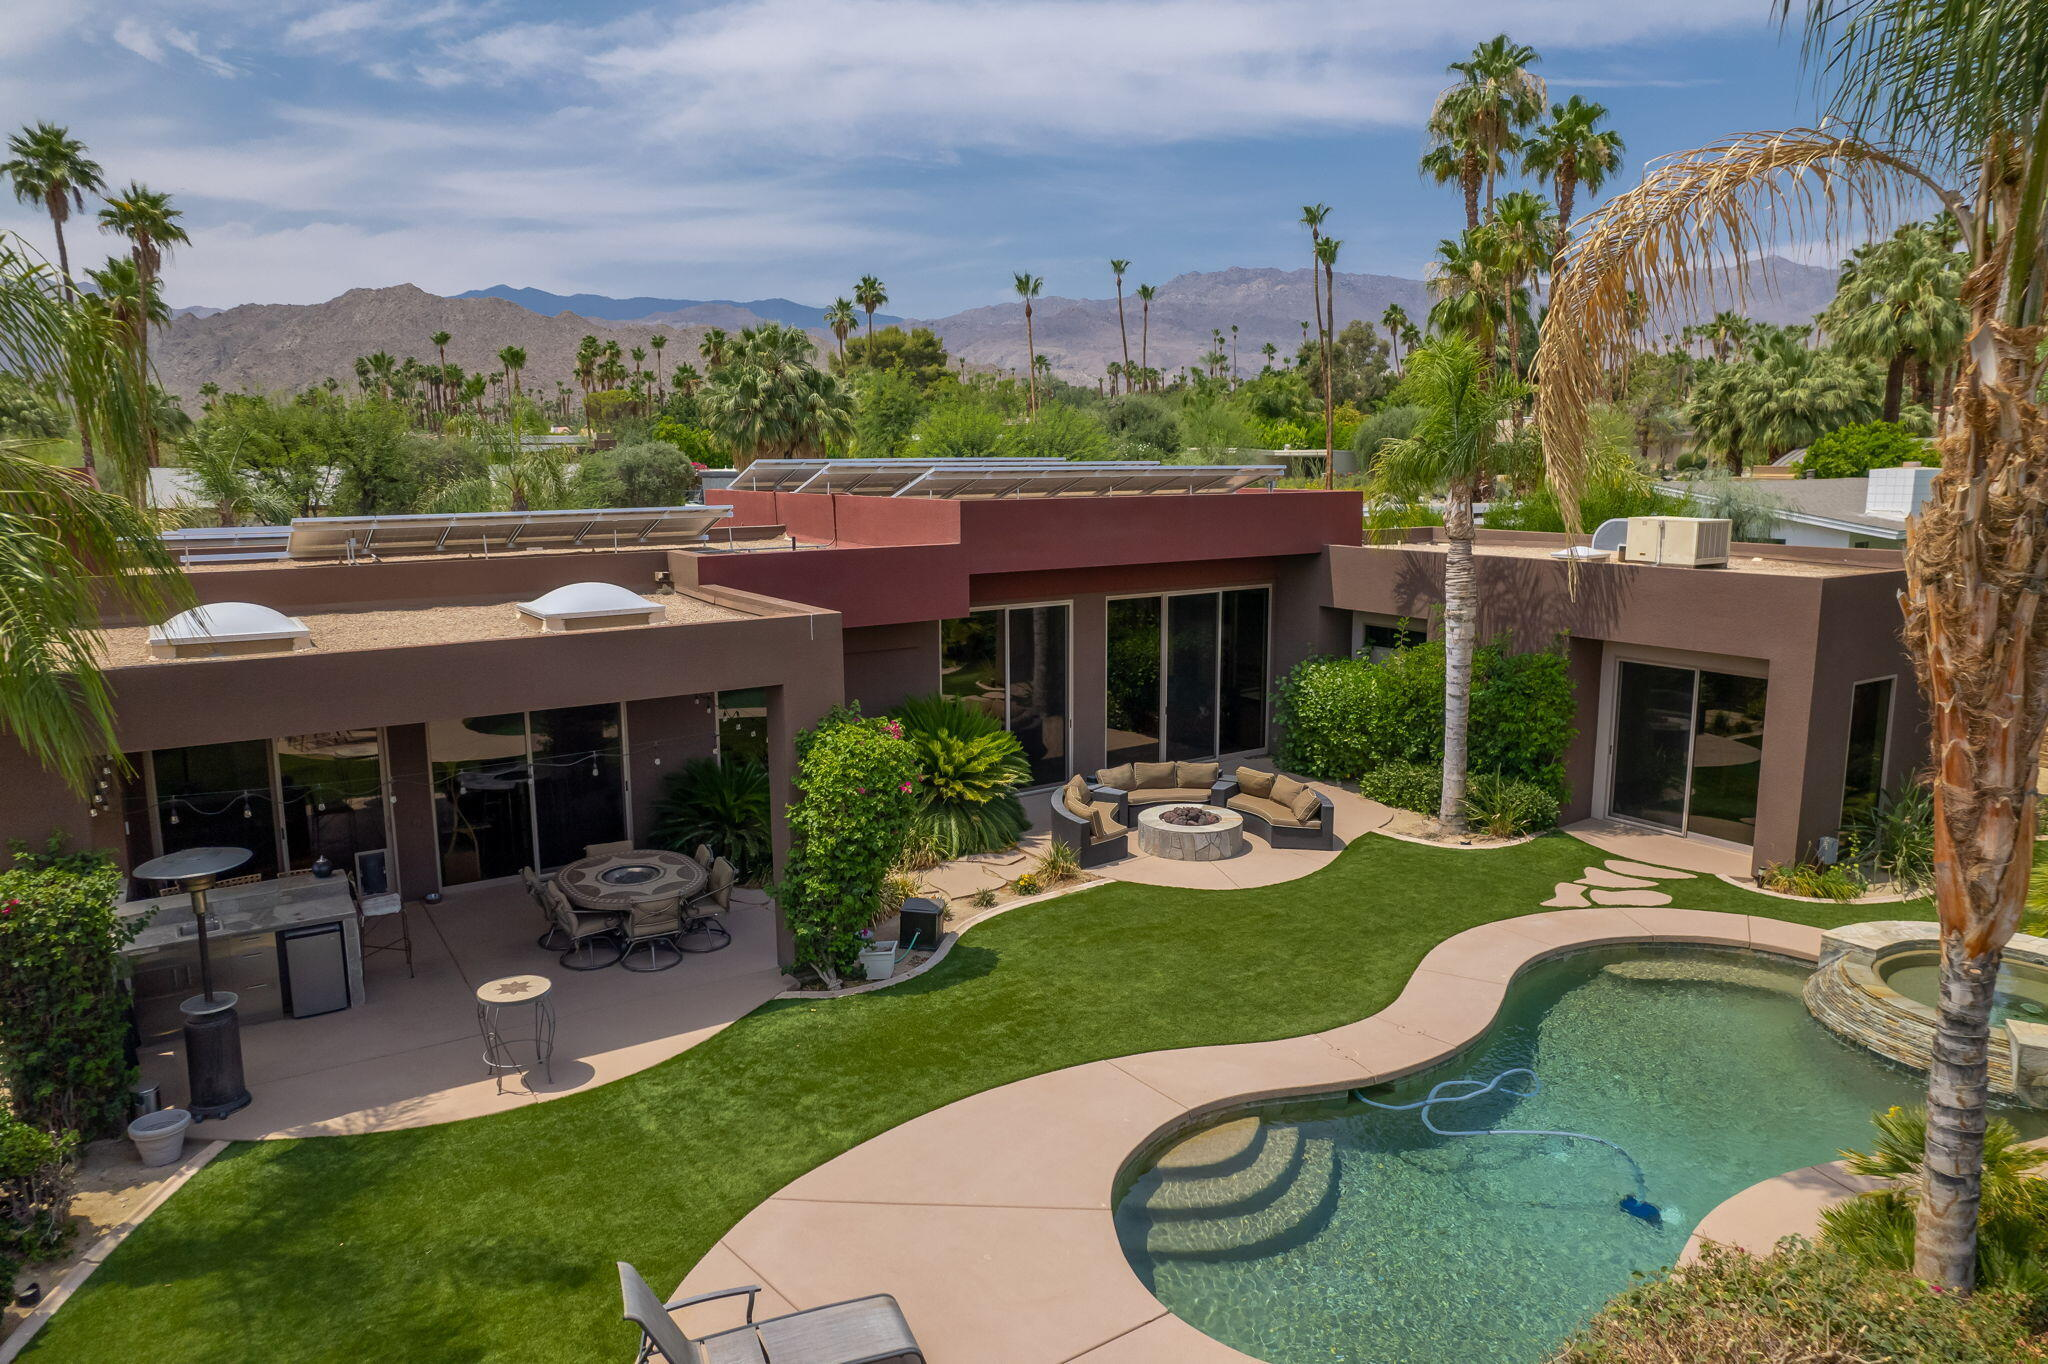 Never before on market, is this gorgeous Rare Find, sitting in the hills of South Palm Desert.  Custom built by the original/current owners, this home exudes pride of ownership!  From the full paver drive and walkway, enter through massive stainless double doors, where you are welcomed by soaring 12' ceilings, and an open floor plan giving you the sense of spaciousness.  Each of the 3 guest suites have their own bathrooms and patios, giving them their well deserved privacy.  Lending to this home's efficiency are bronze tinted, dual-pane windows with high performance low-e coating, and a 52 panel, fully owned solar system.  Other amenities to this gorgeous build include 4-zone air conditioning, one zone alone being for the 3-car garage, two high end evaporative coolers, 4-zone speaker system, and electronic power sun shades covering the windows.  When you are ready to relax, exit out back to your private backyard oasis, where you will find a covered patio with a custom built bar, room for plenty of seating, gas fire pit, and to top it off, a glistening salt water pool and spa.  This is desert living at its finest!